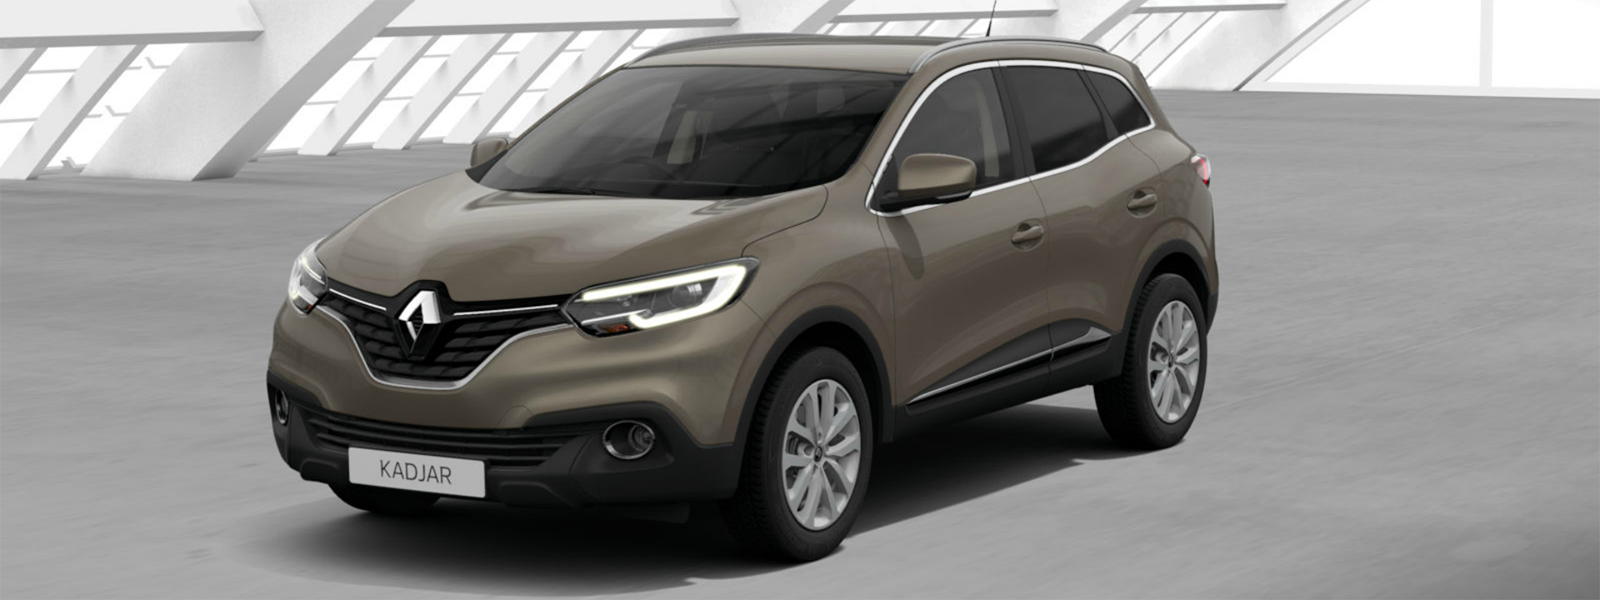 renault kadjar colours guide and prices carwow. Black Bedroom Furniture Sets. Home Design Ideas